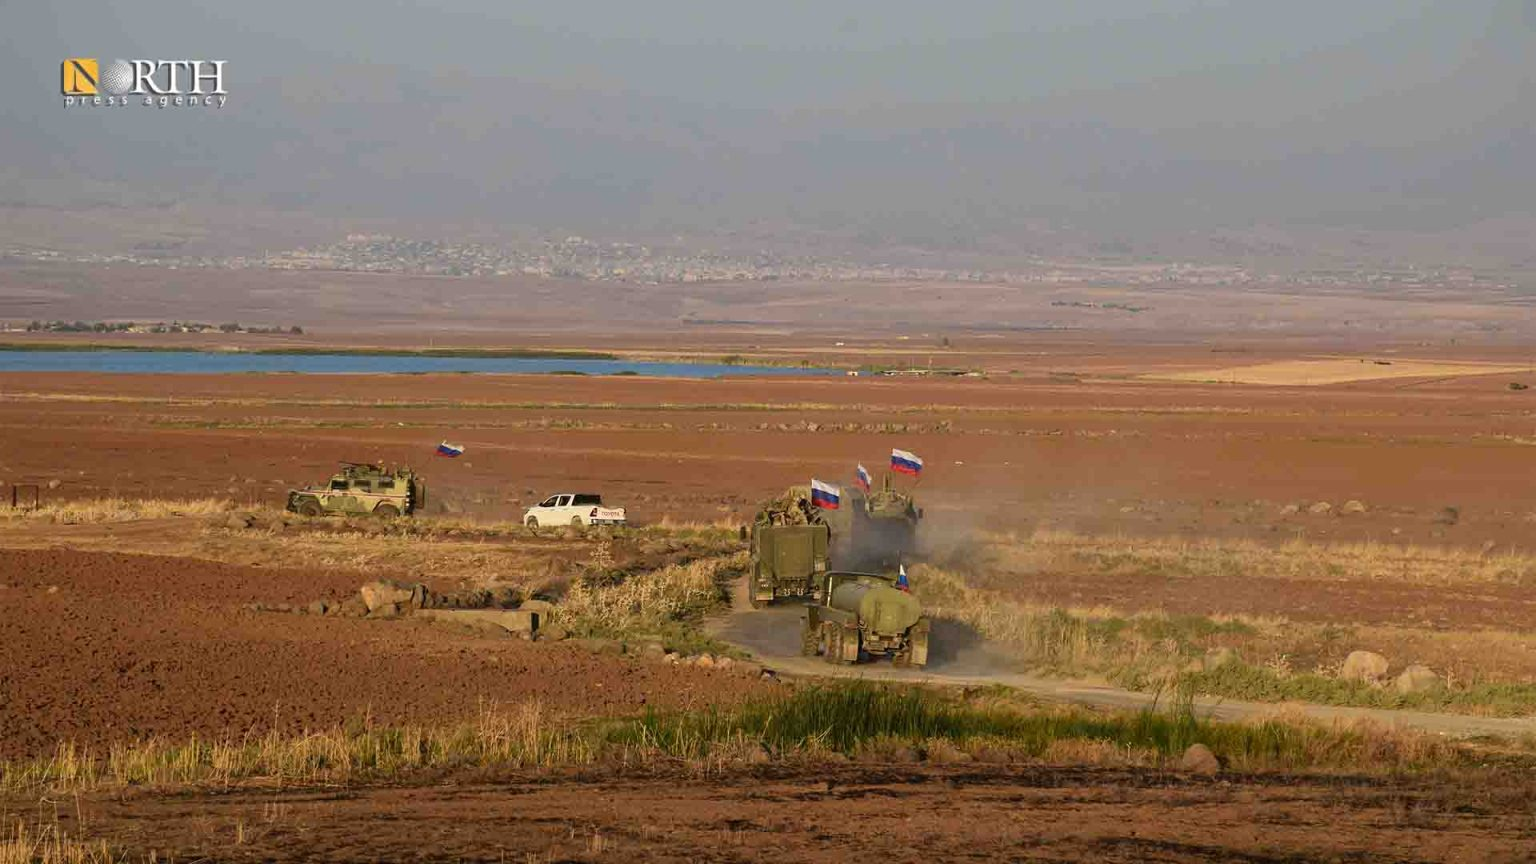 A Russian patrol withdraws from Derik countryside, north Syria, after residents' protest- North Press